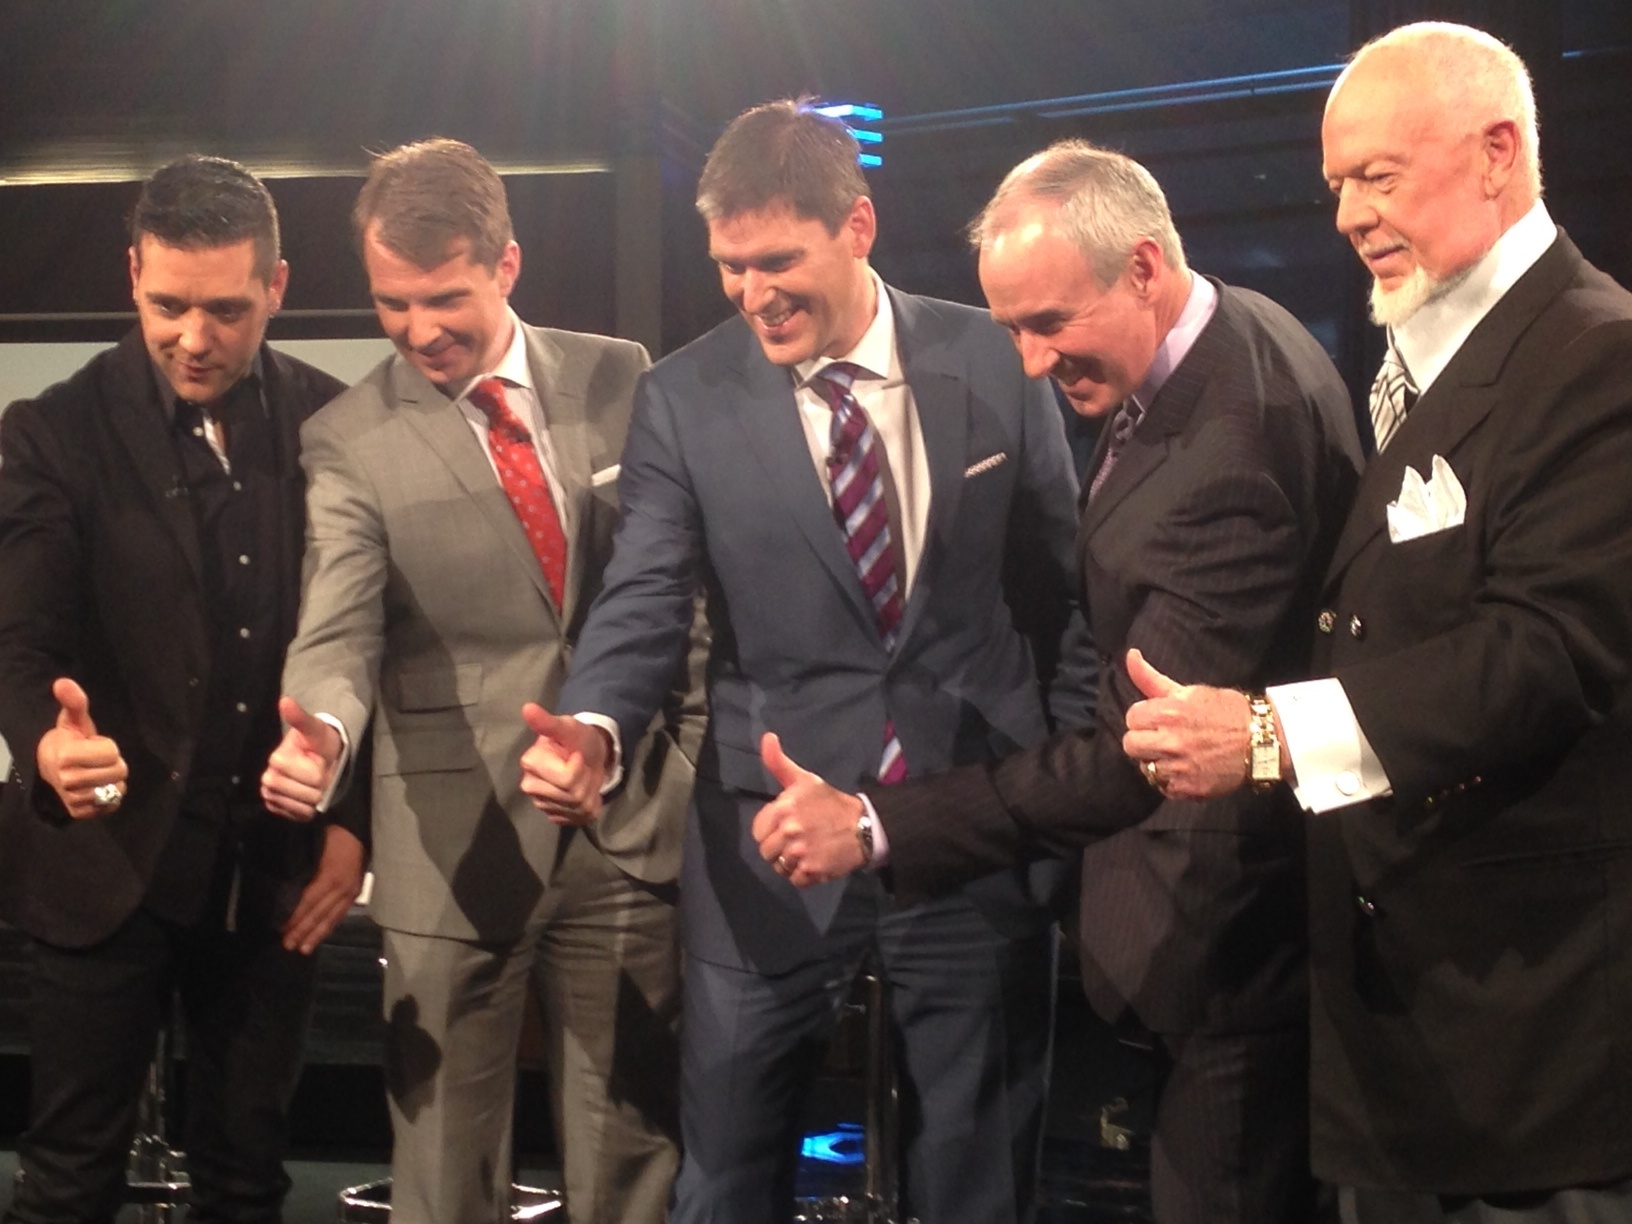 Copied from Media in Canada - hockey night in canada rogers nhl hosts